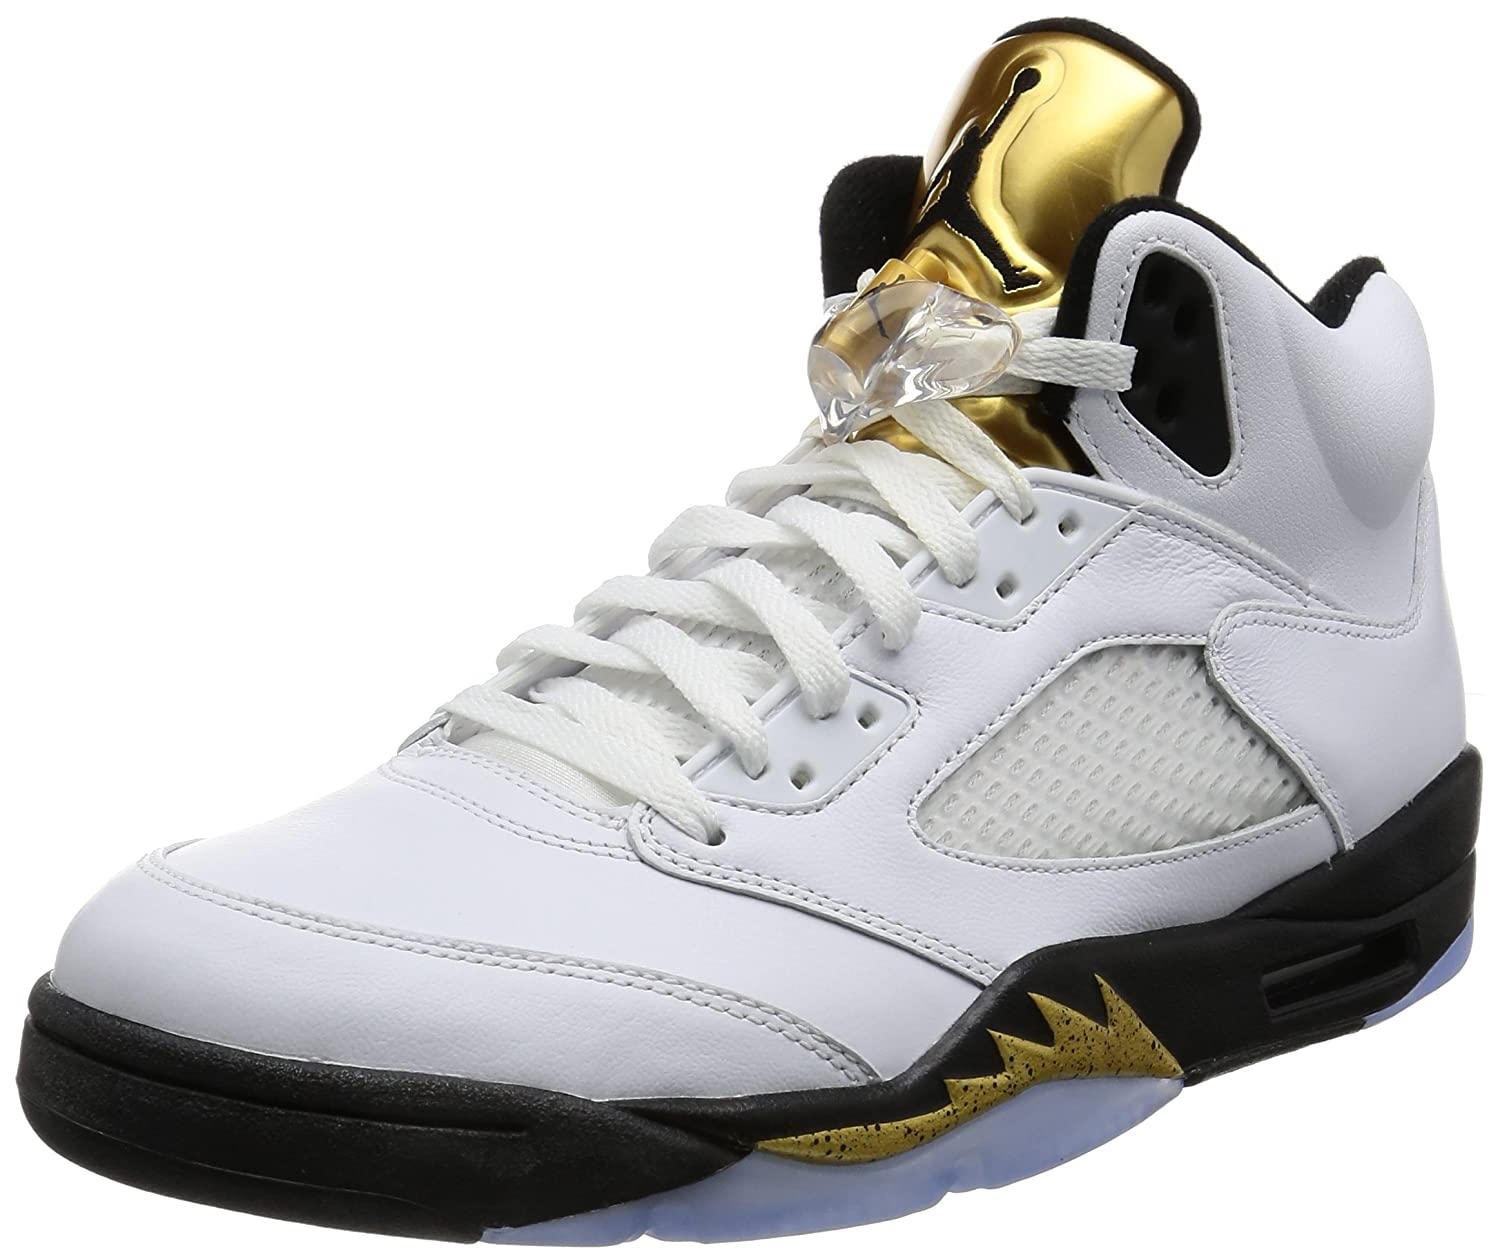 size 40 1afc1 02a34 Amazon.com   Nike Mens Air Jordan 5 Retro Olympic White Black-Metallic Gold  Leather Size 10.5   Basketball